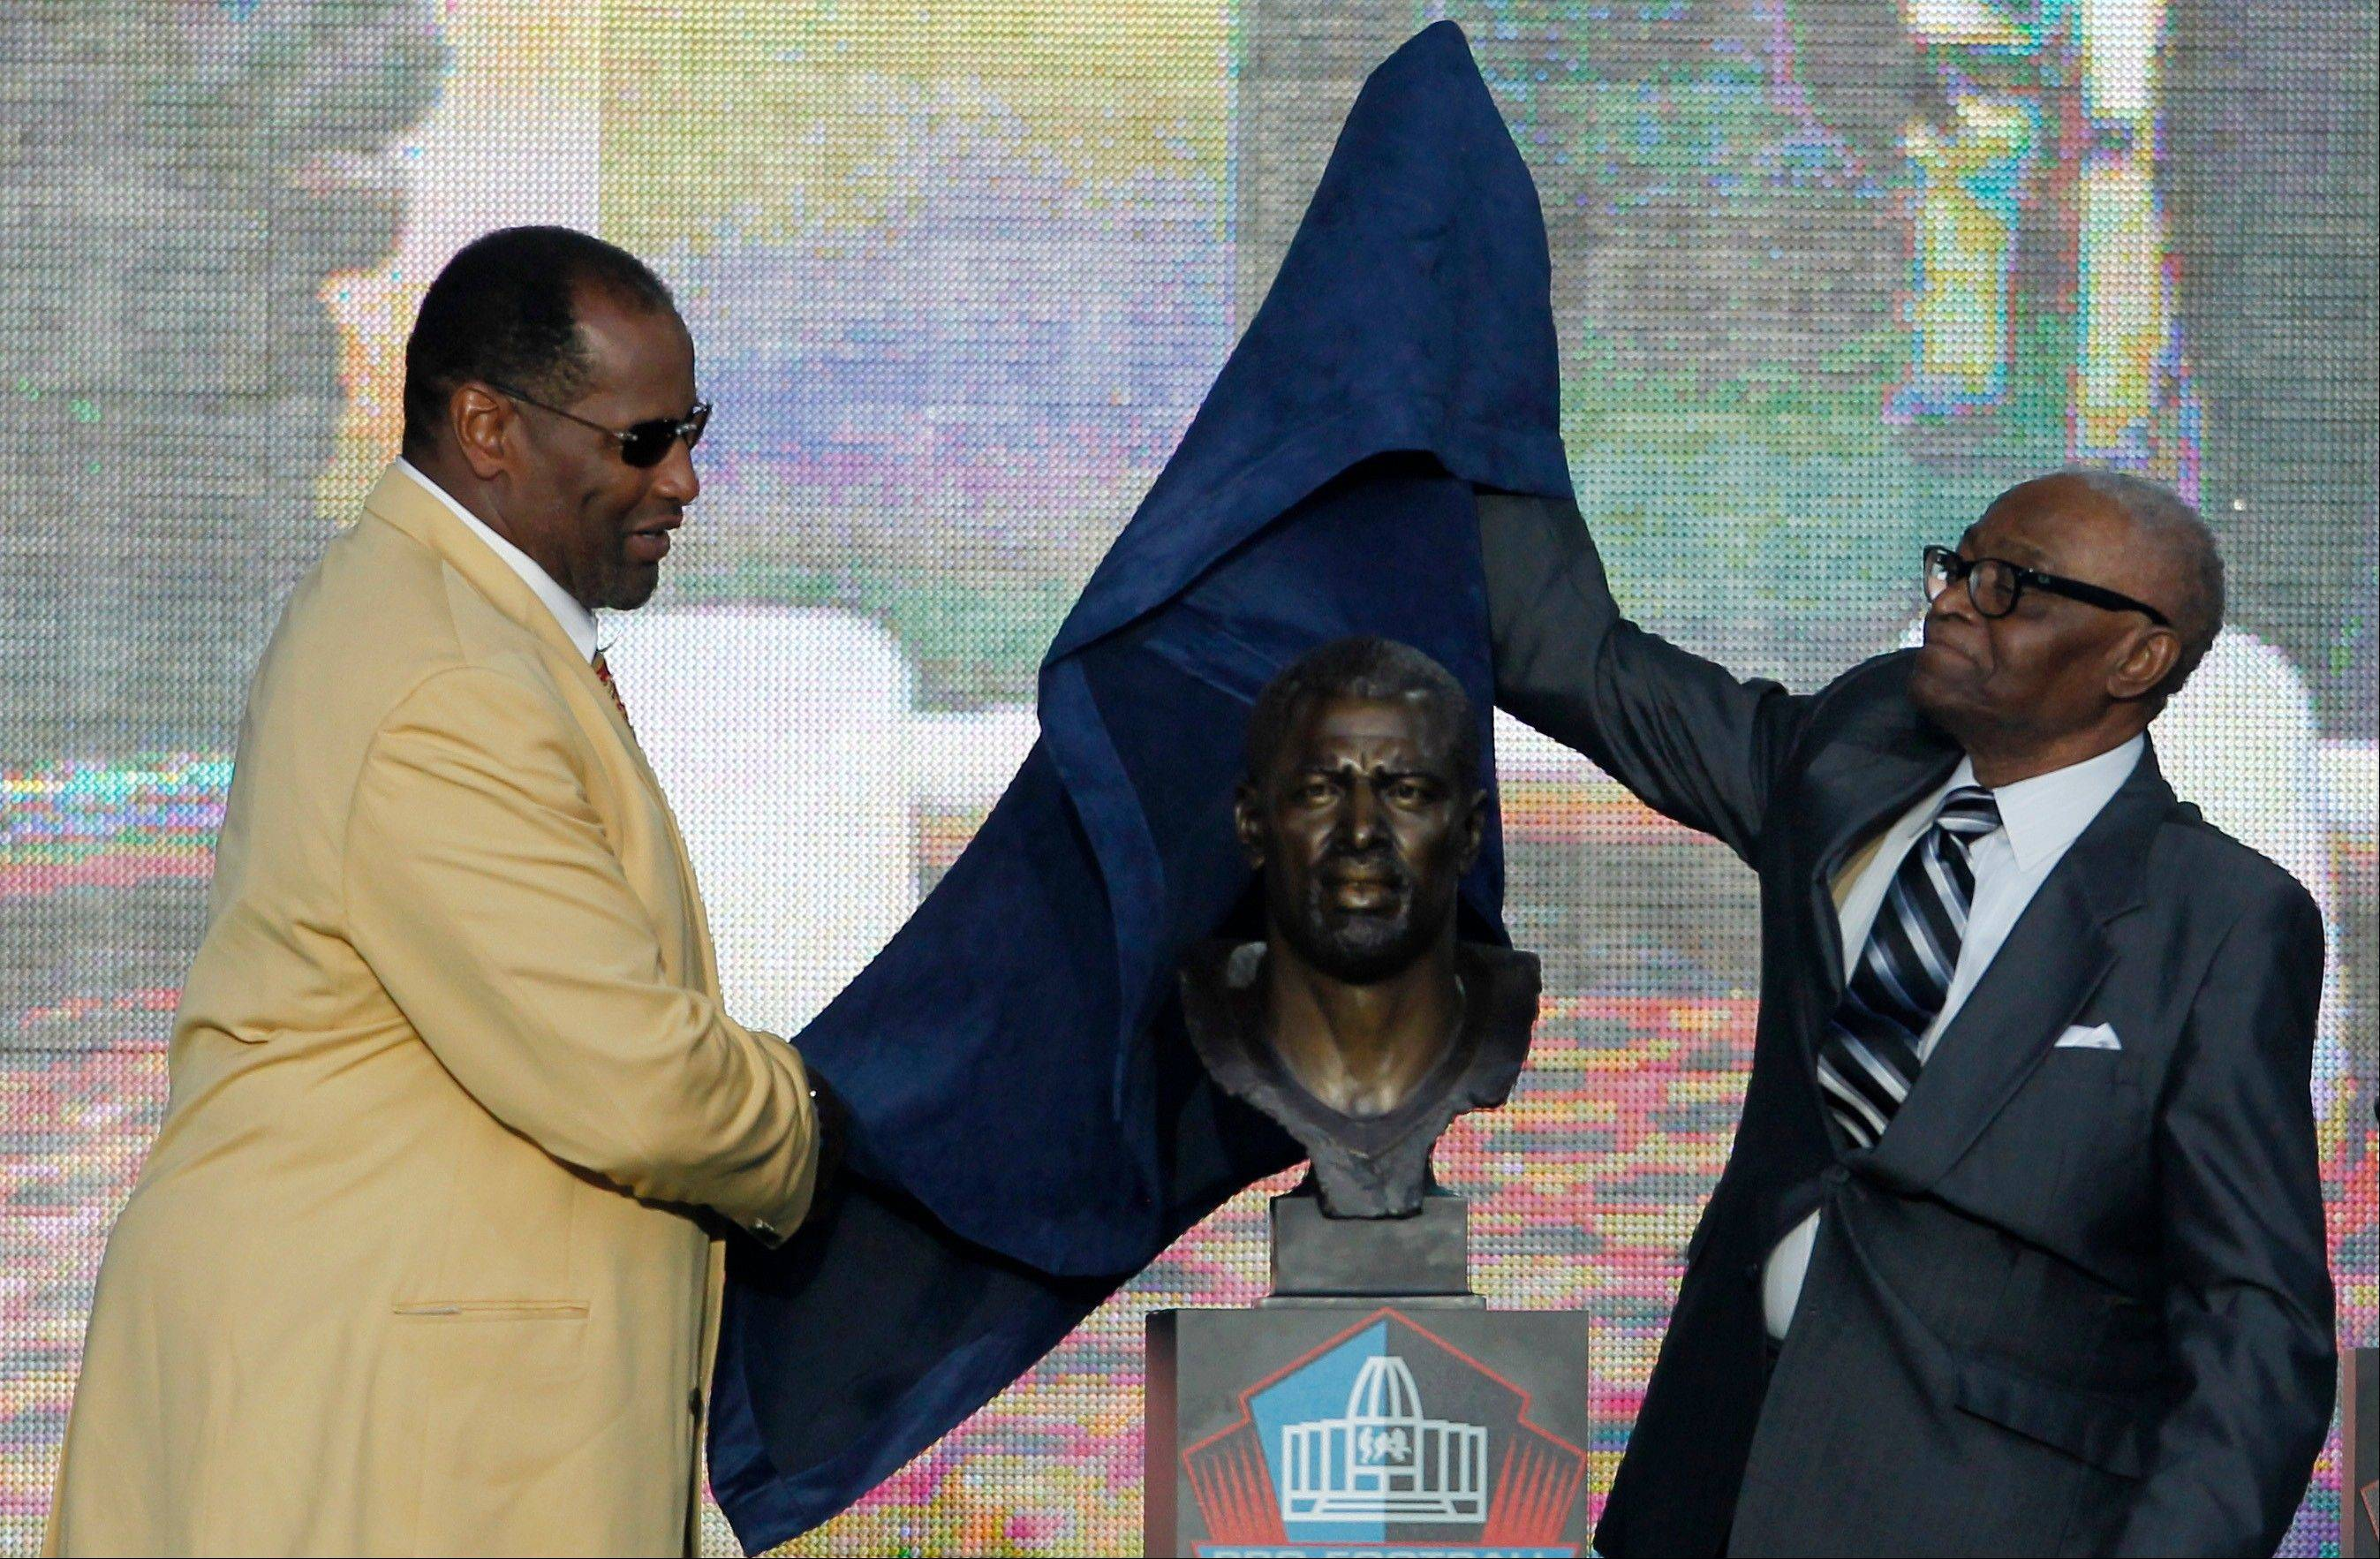 Richard Dent, left, looks on as his presenter, Joe Gilliam, unveils a bust of Dent during Dent's induction ceremony at the Pro Football Hall of Fame on Saturday in Canton, Ohio. Gilliam is a former Tennessee State coach.